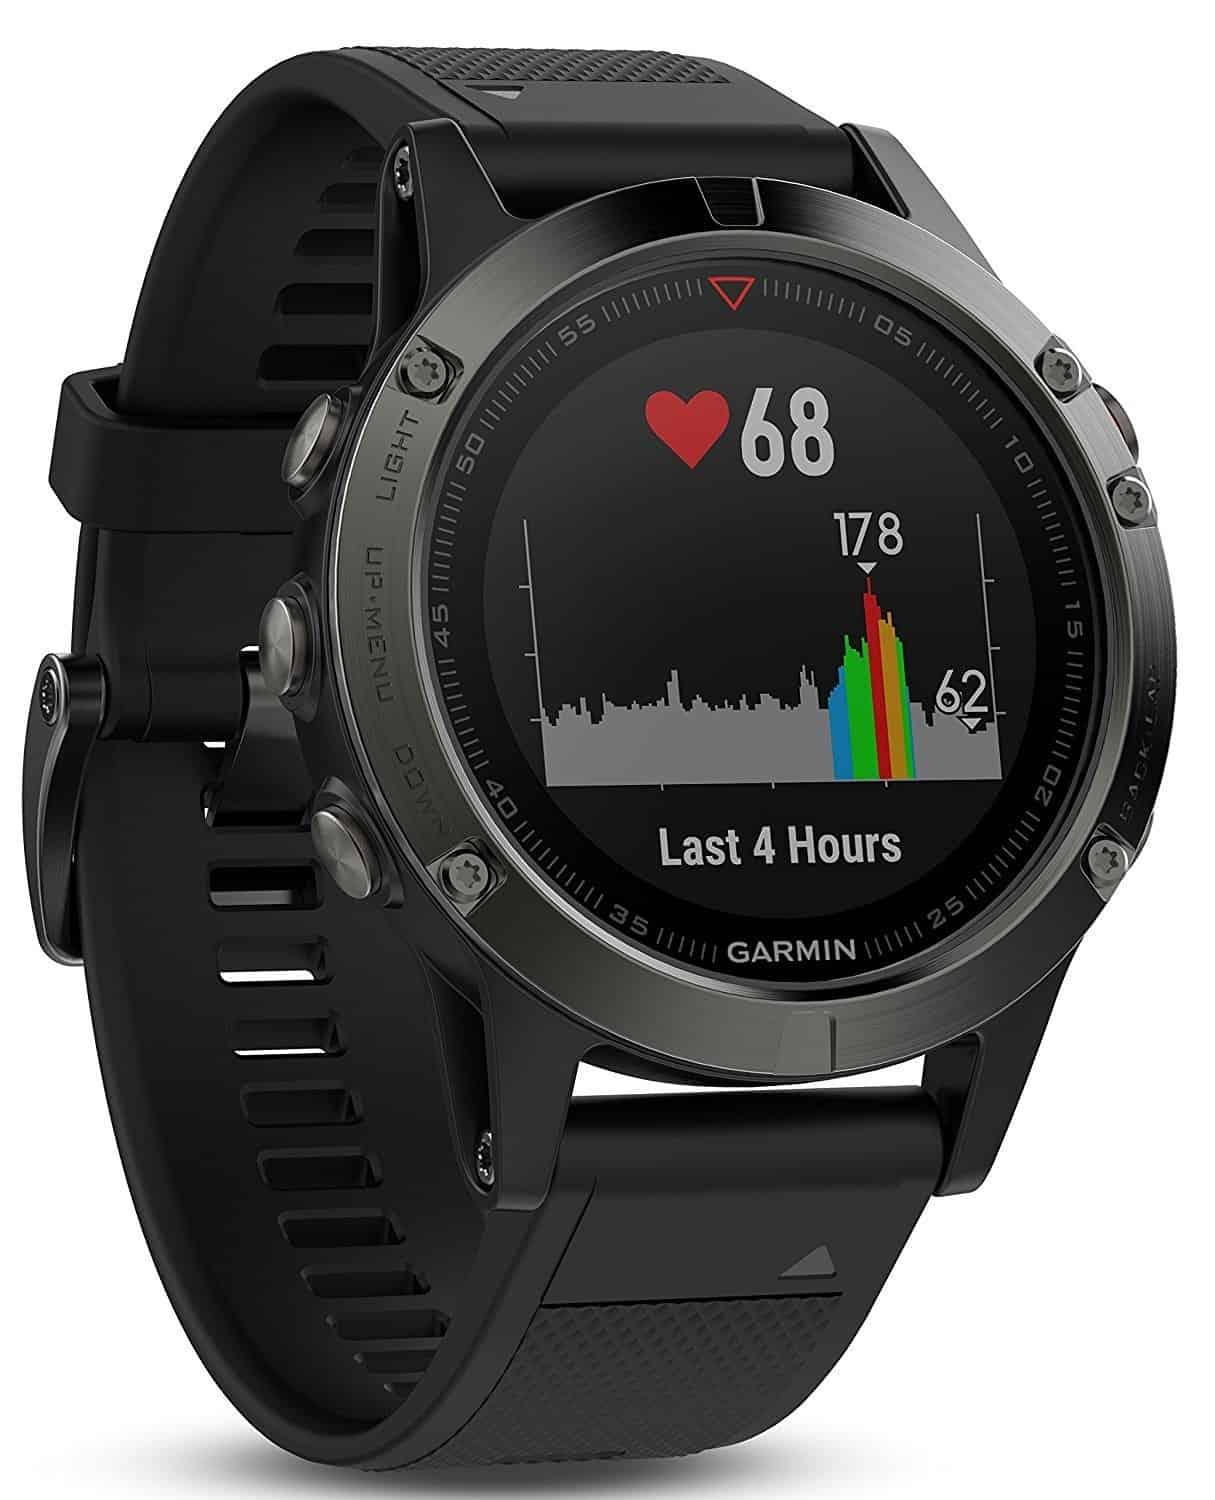 Best GPS Hiking Watch - Garmin